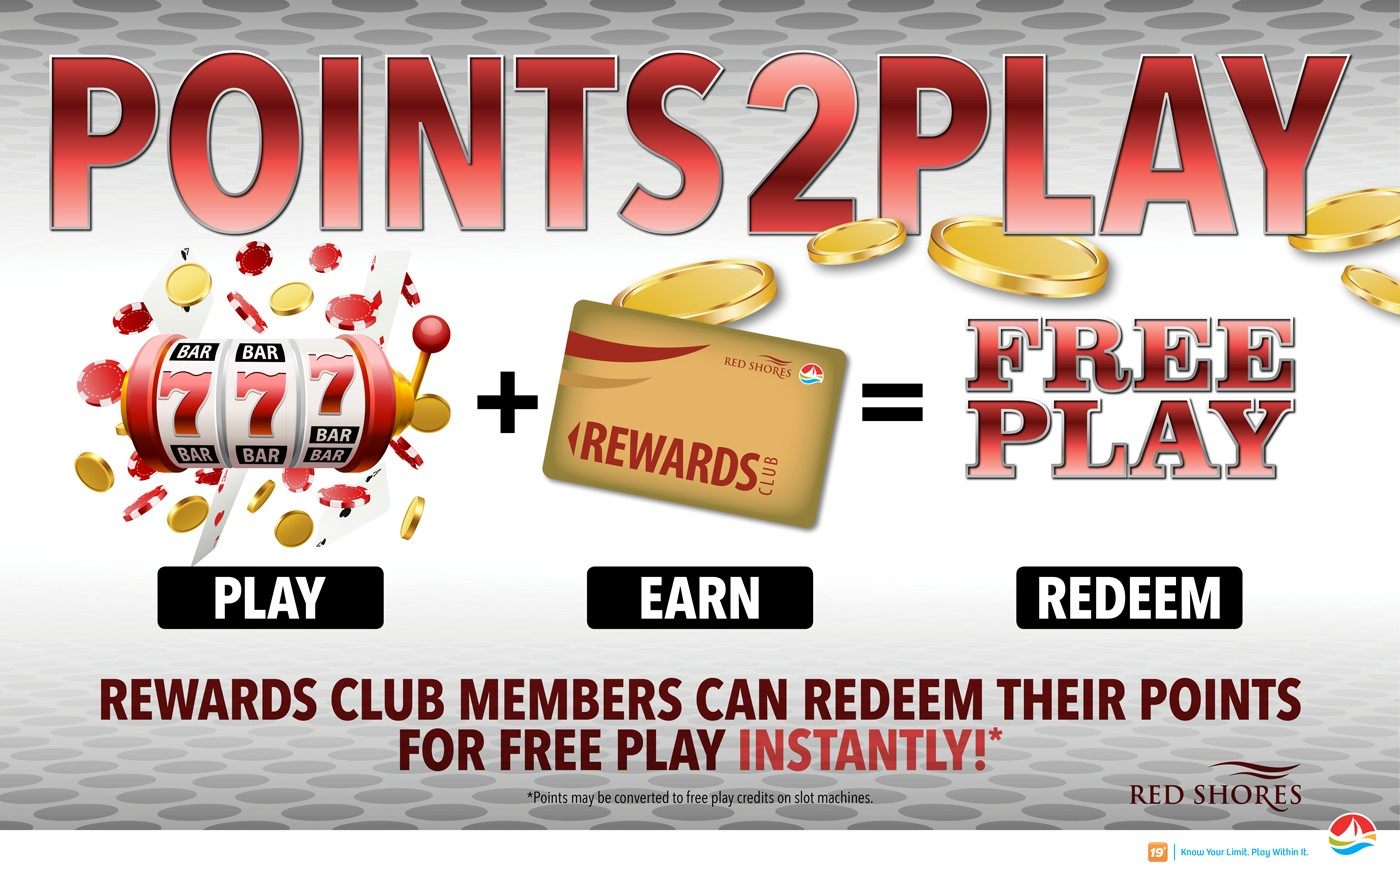 Points2Play